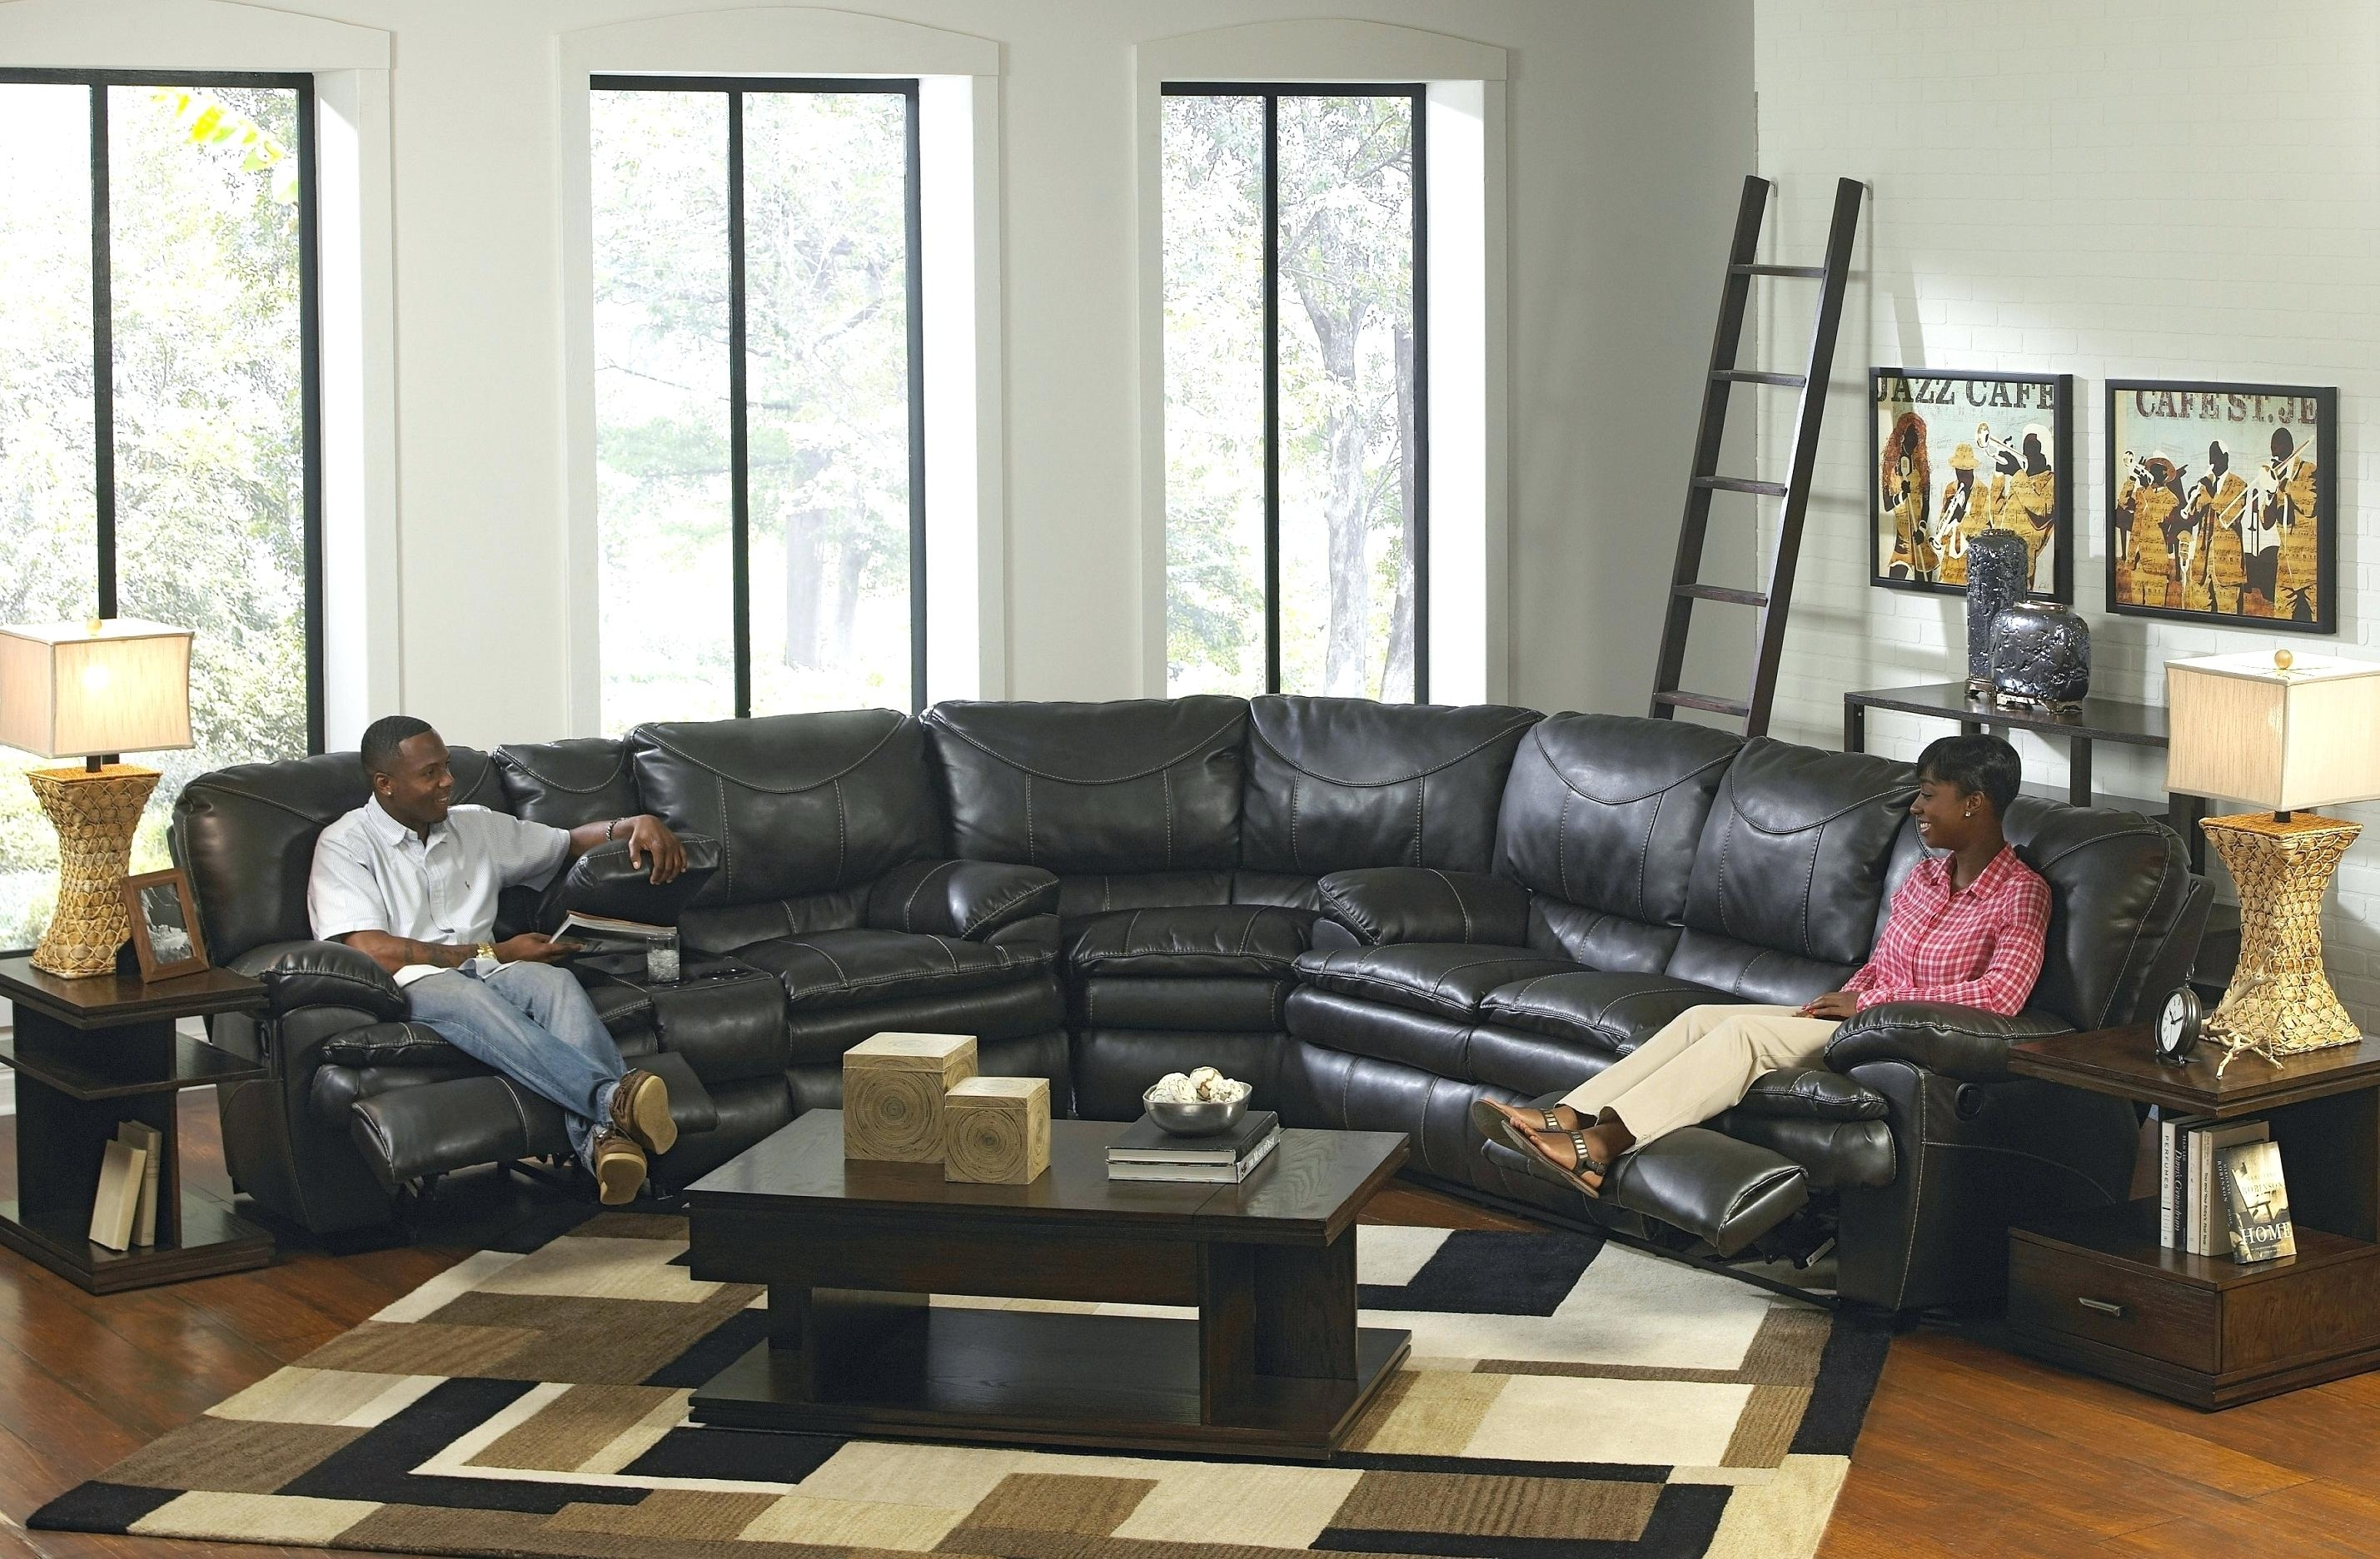 12 Best of Berkline Sectional Sofa